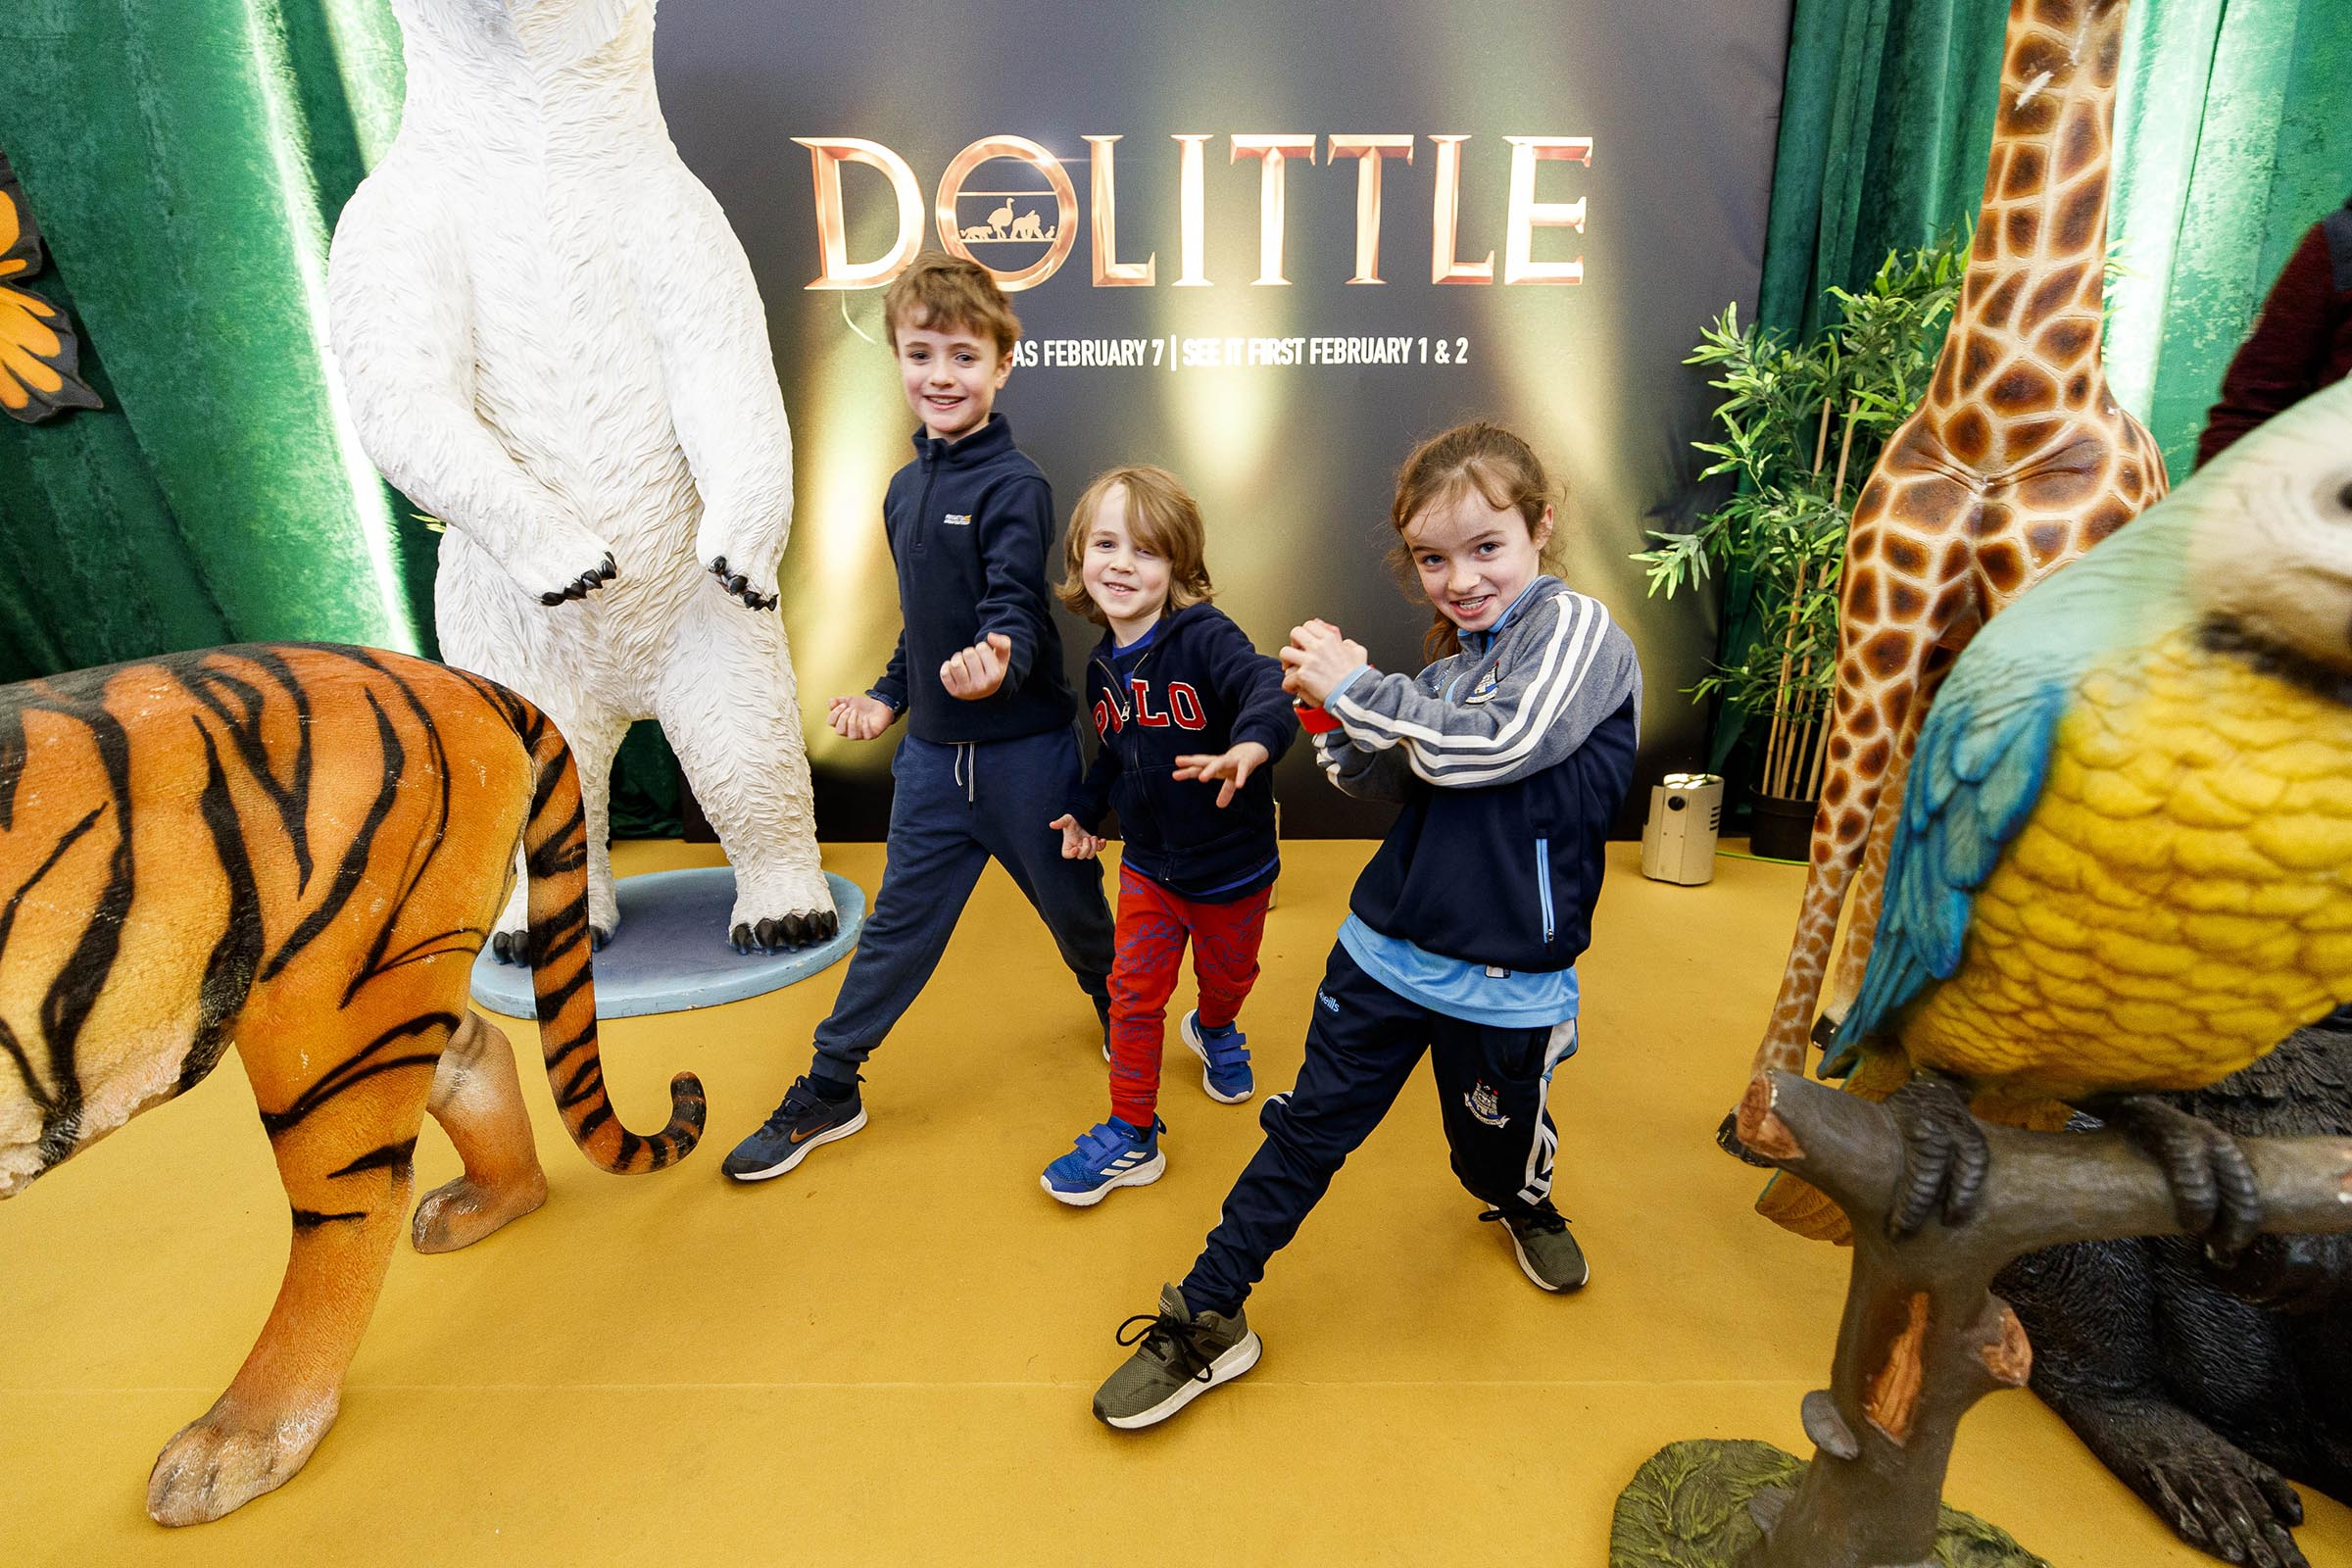 Emily (8), Ben (5) and James Baaij (8) pictured at the Universal Pictures special preview screening of Dolittle at Odeon Point Square, Dublin.